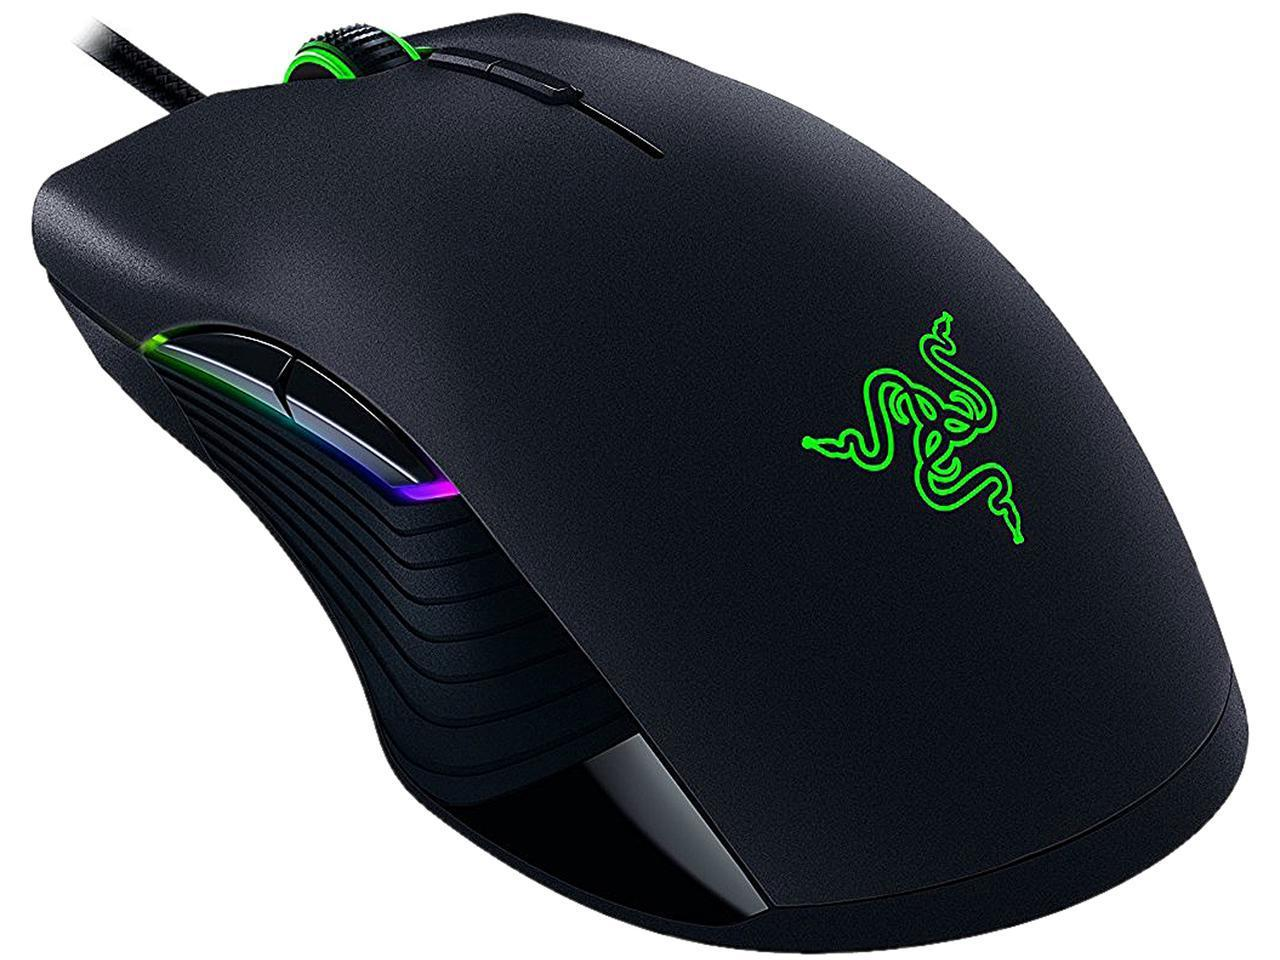 Razer Lancehead Tournament Edition - Professional Grade Chroma Ambidextrous Gaming Mouse